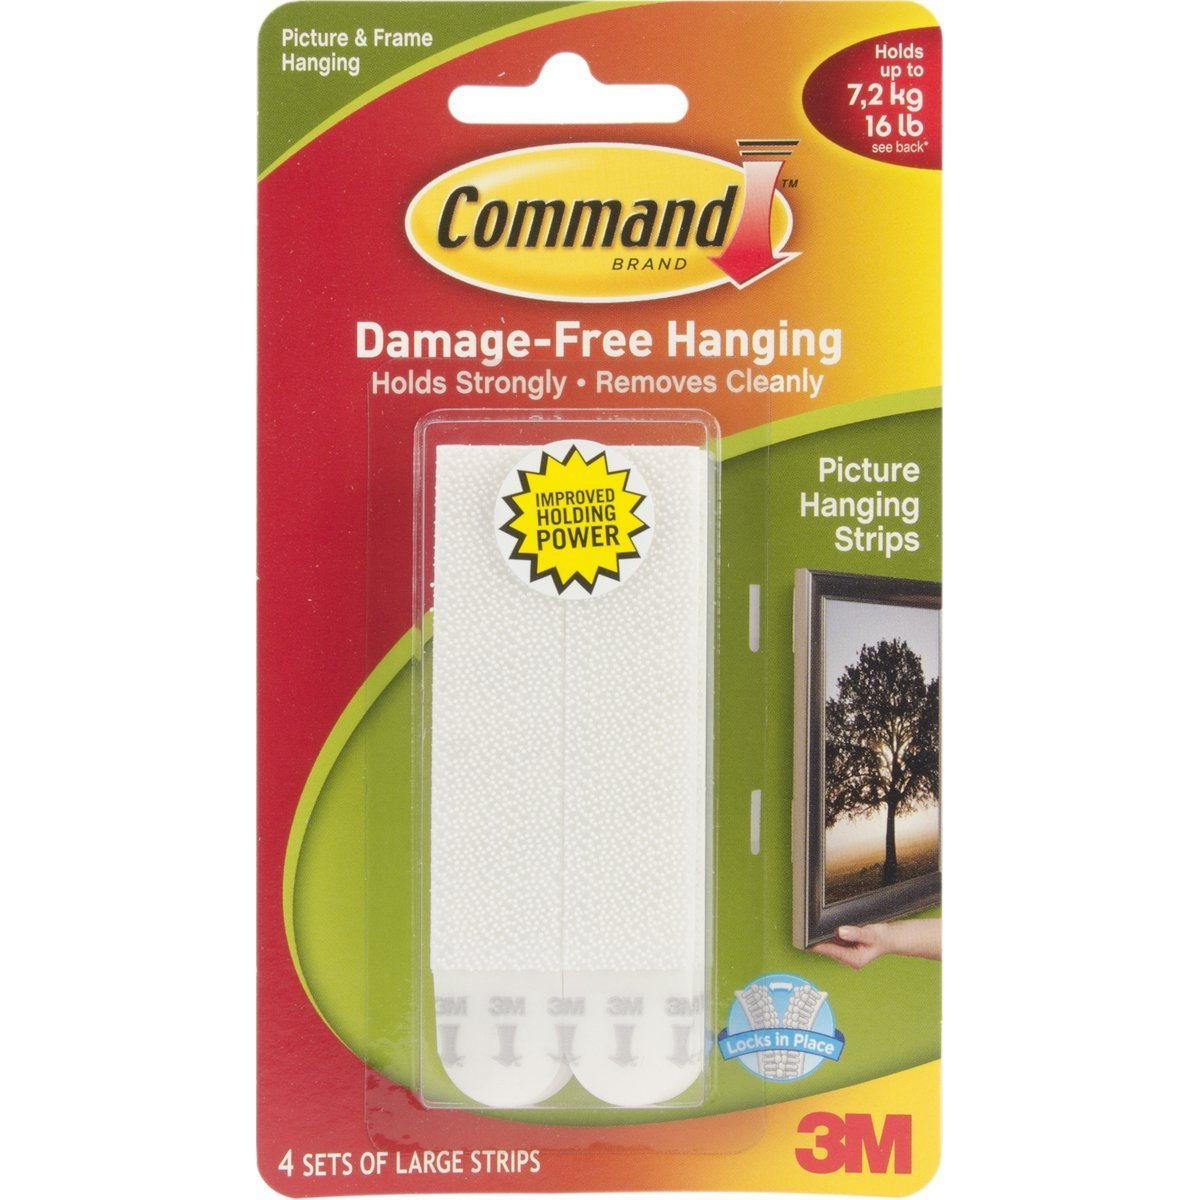 5X Command Large Picture Hanging Strips, 17206 (Each Pack contains 4 Sets)